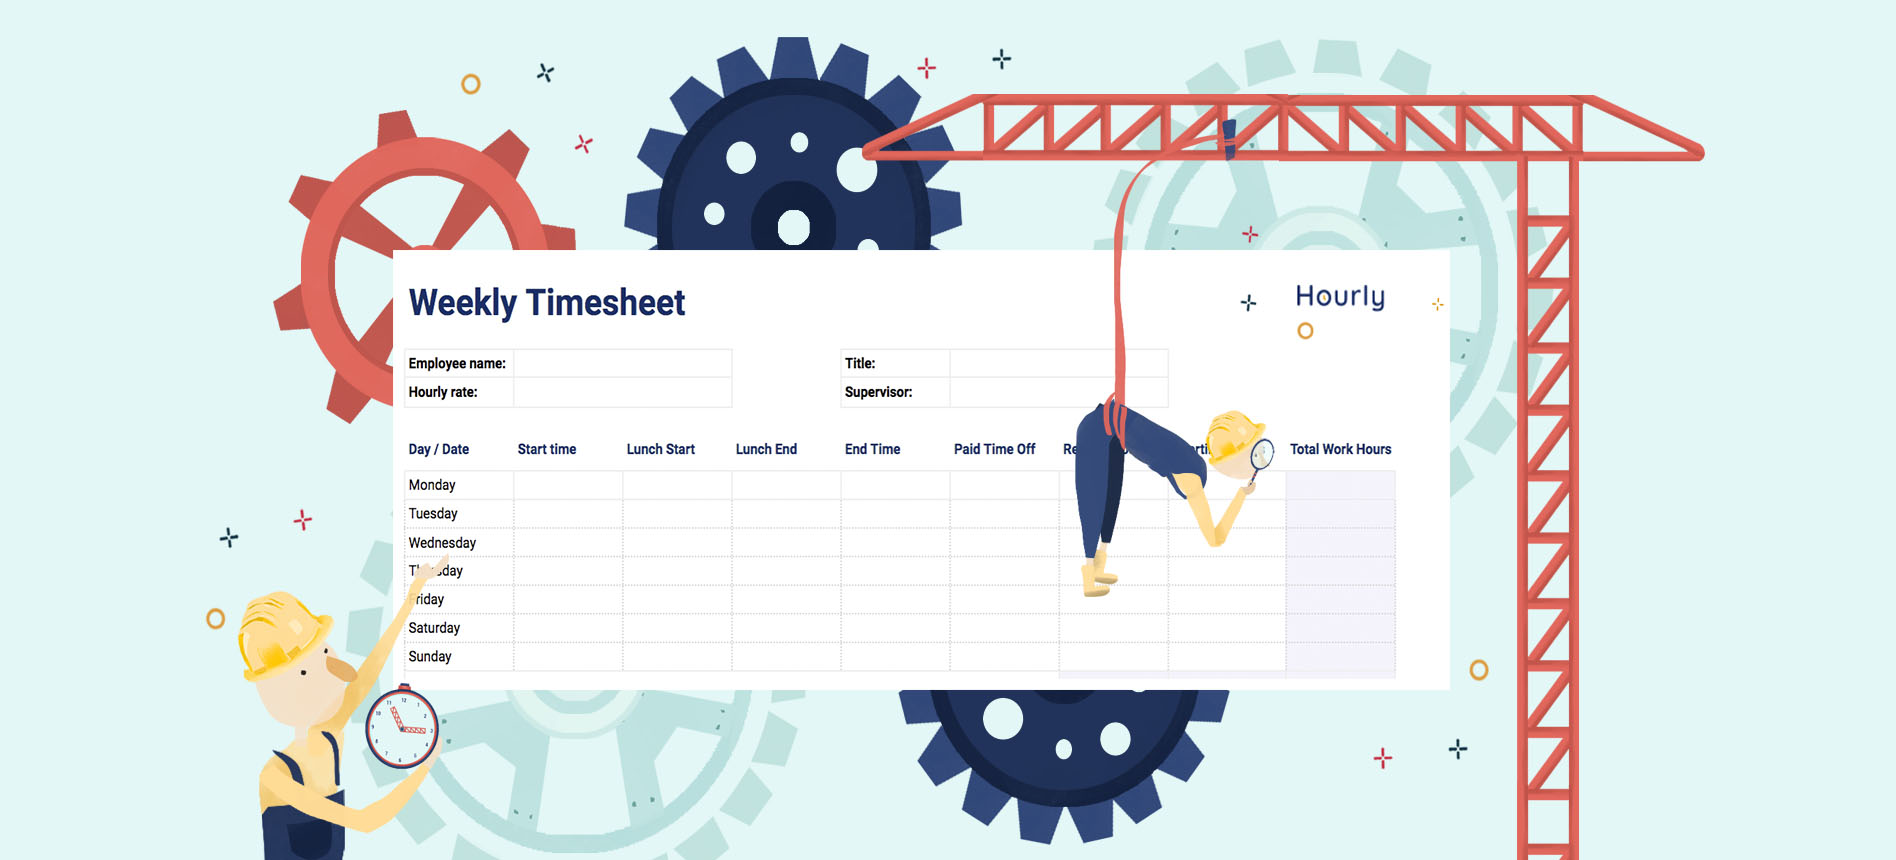 Learn more by creative bloq staff 30 march 2021 h. Free Paper Timesheet Templates And Printable Timecards Hourly Inc